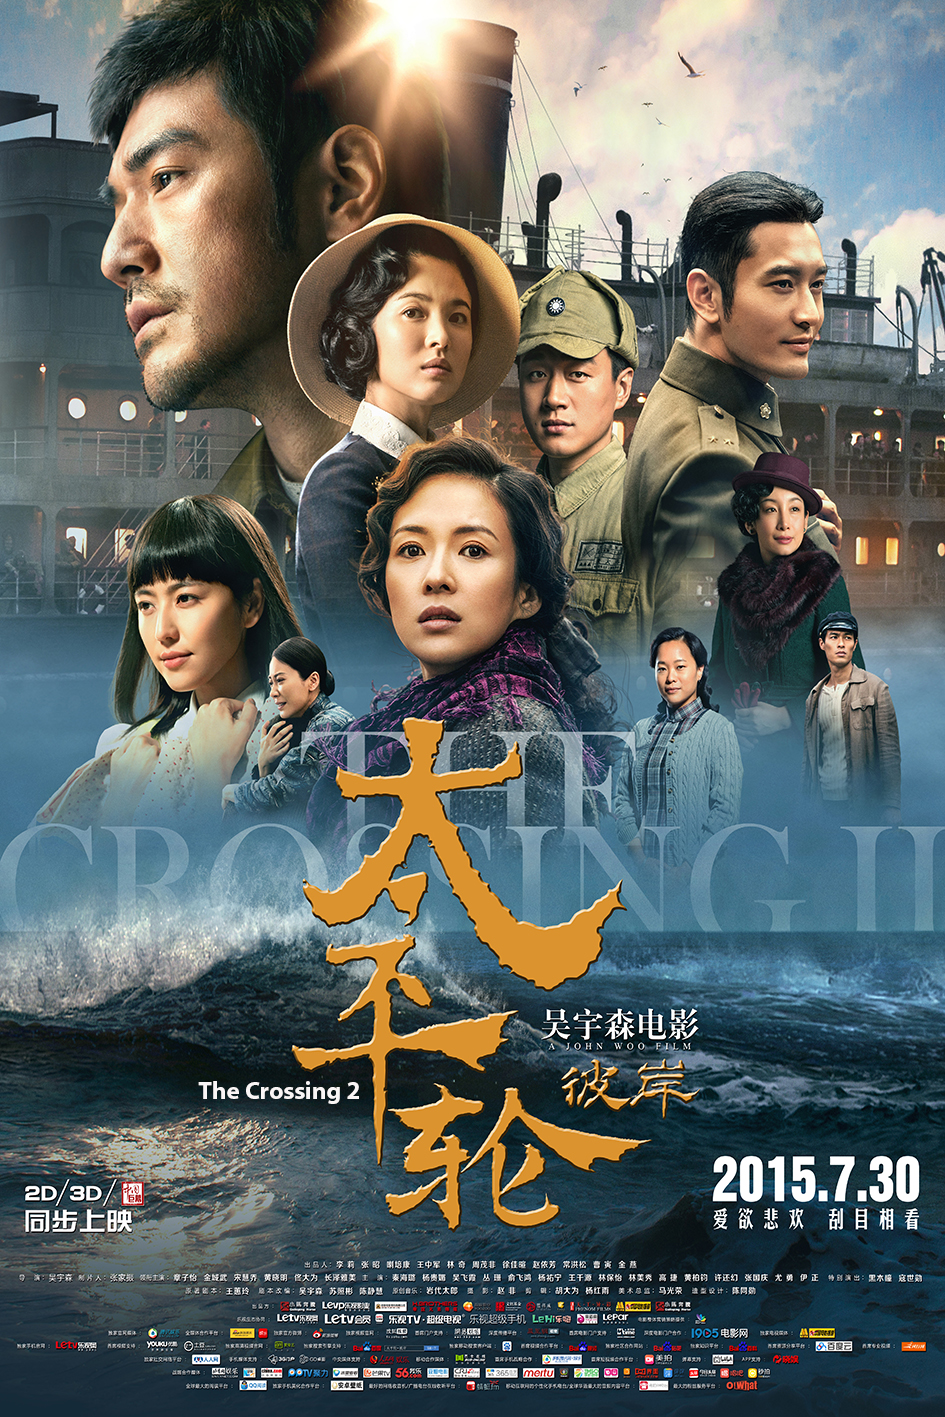 The Crossing 2 [2015 China & HK Movie]